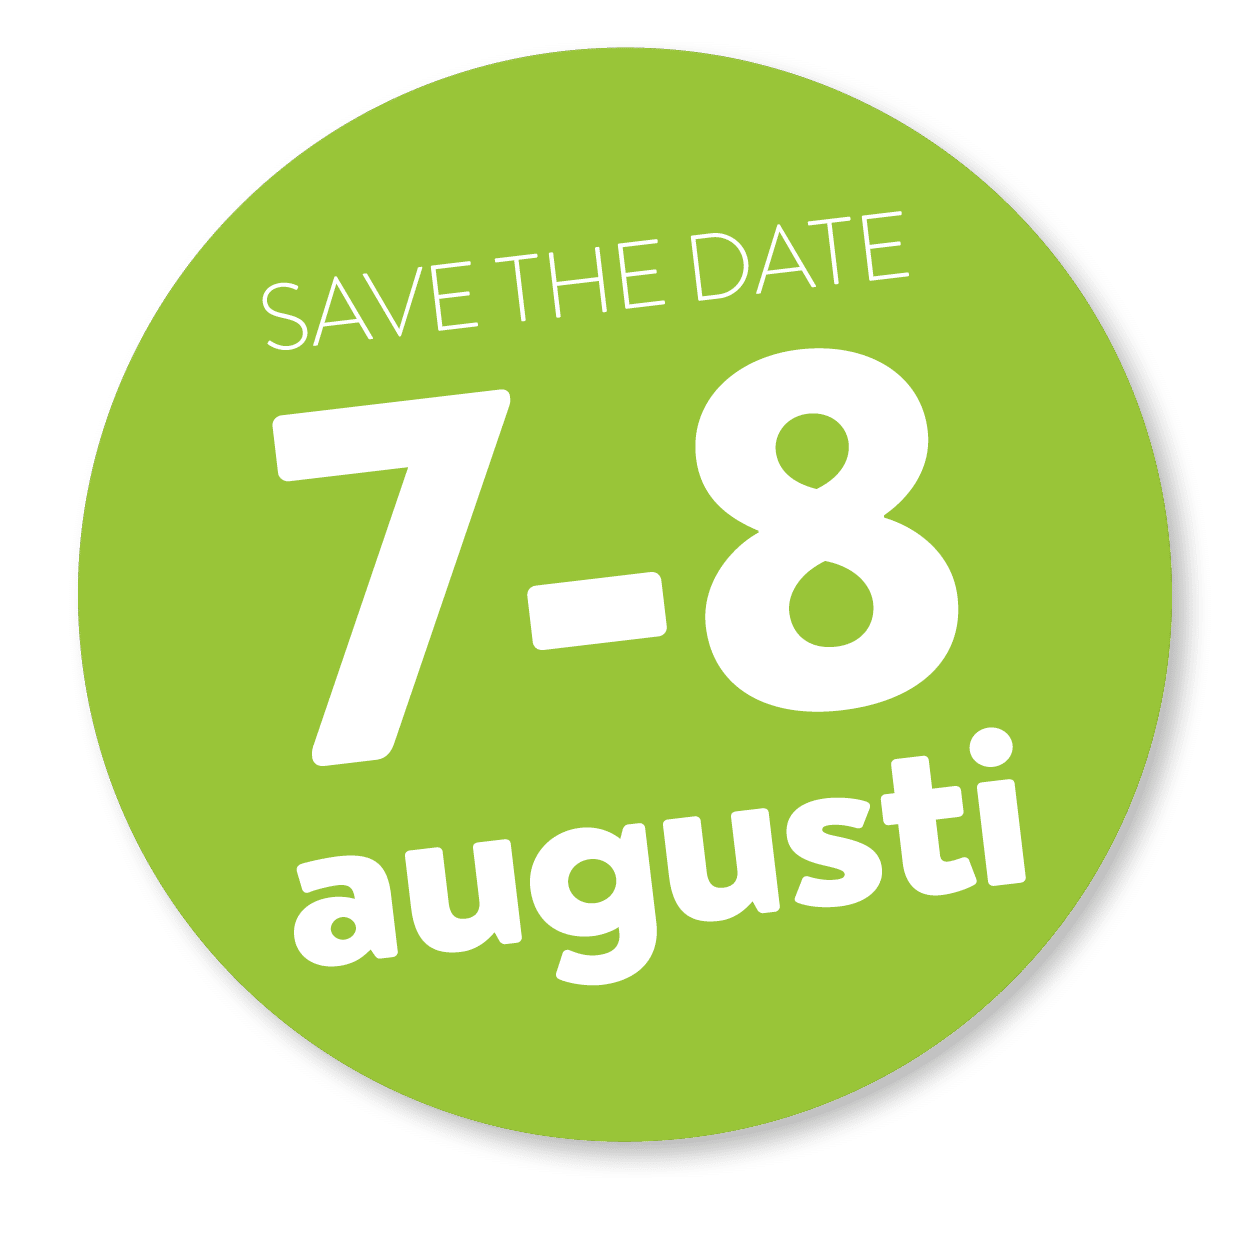 save the date 7-8 aug